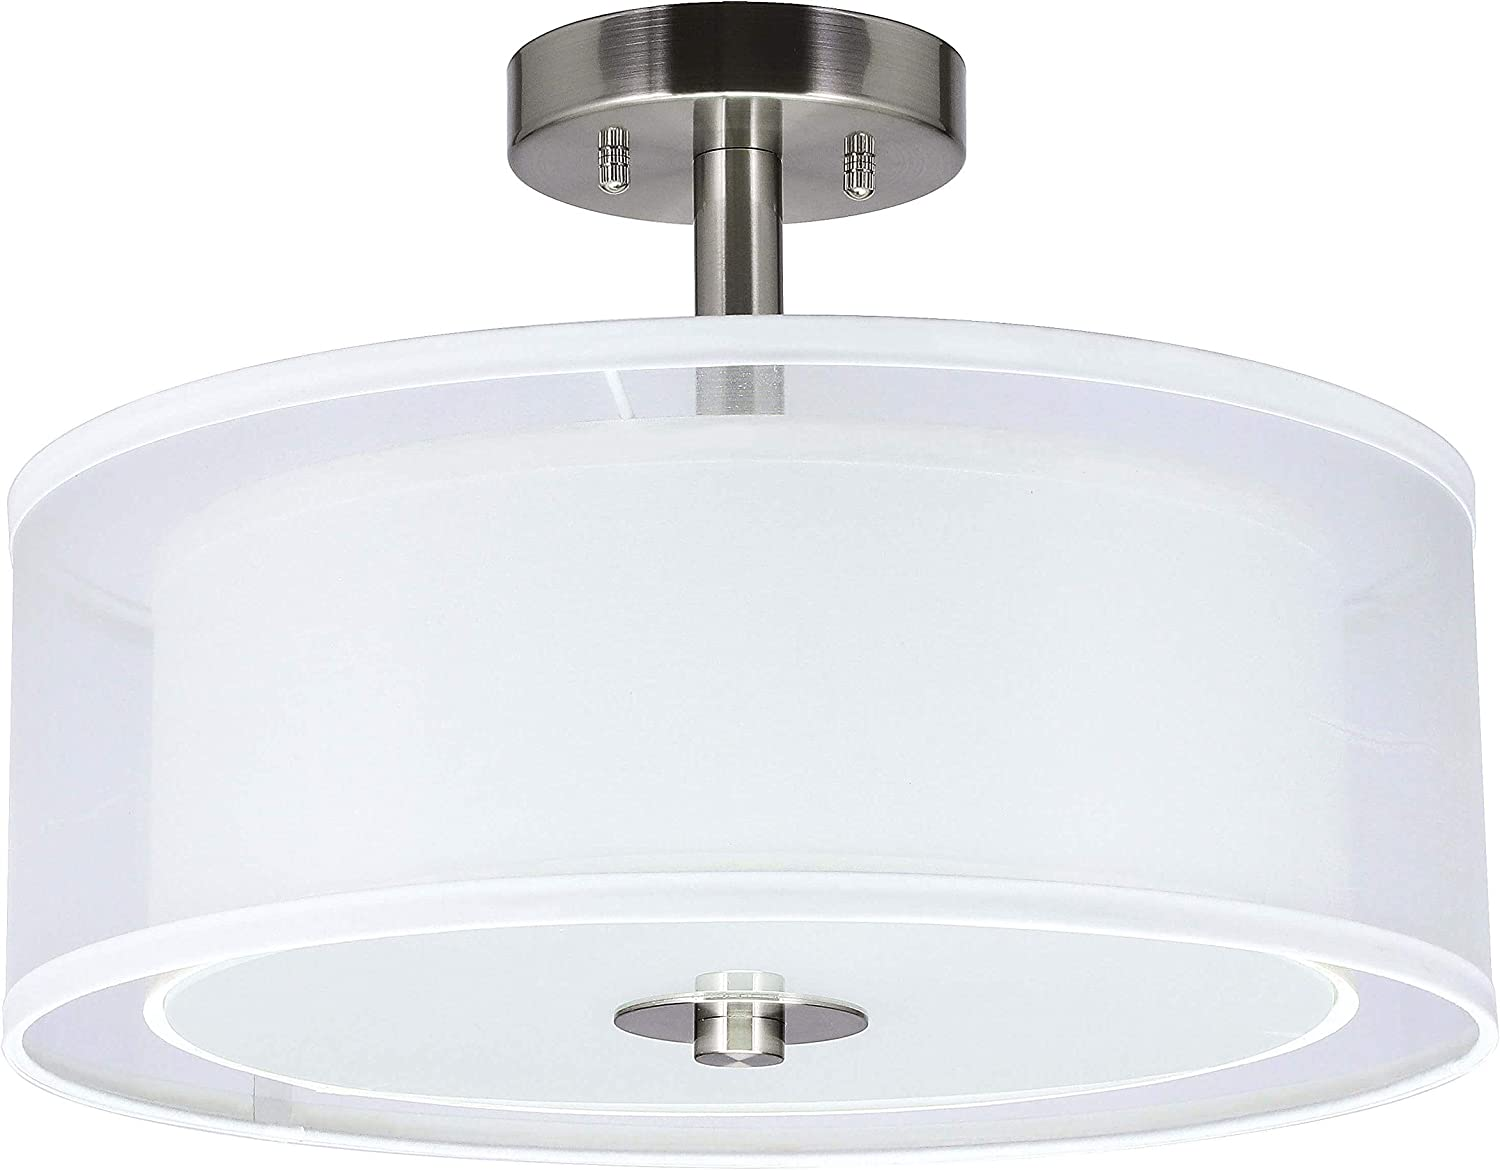 Flush Mount Ceiling Lights Bronze Frosted Glass Shade Light 10 in 6 Pack New